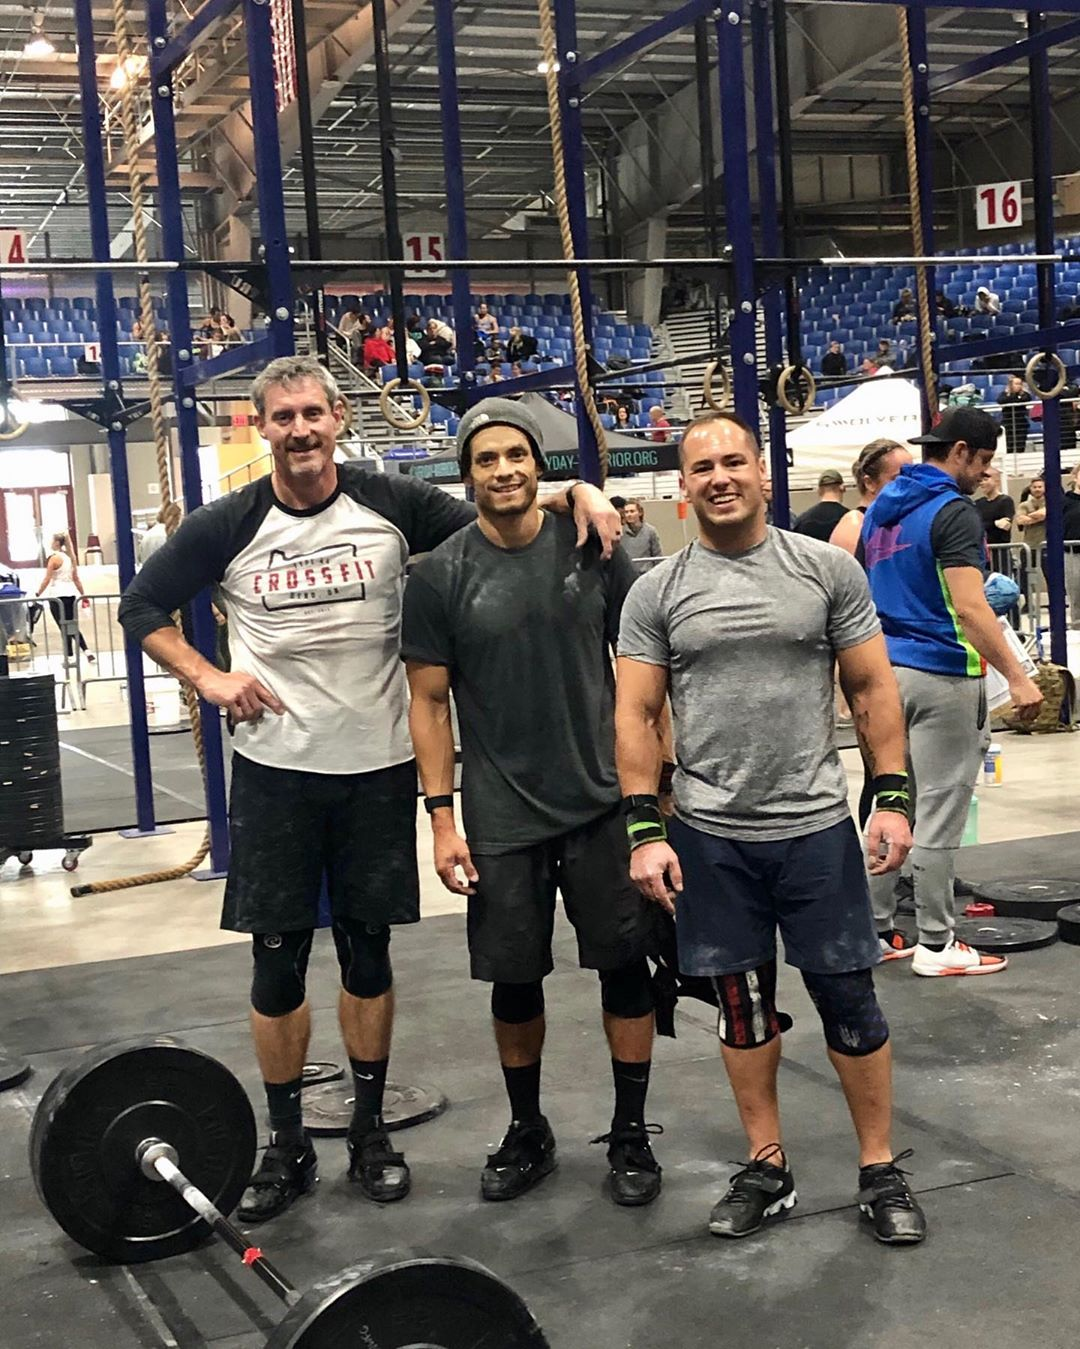 """Type 44's """"Brookswood Bro's"""" with a🥈finish at @nwfitgames Gobbler Gauntlet! Congrats @t.mack.attack @phumps63 @r.zep1"""